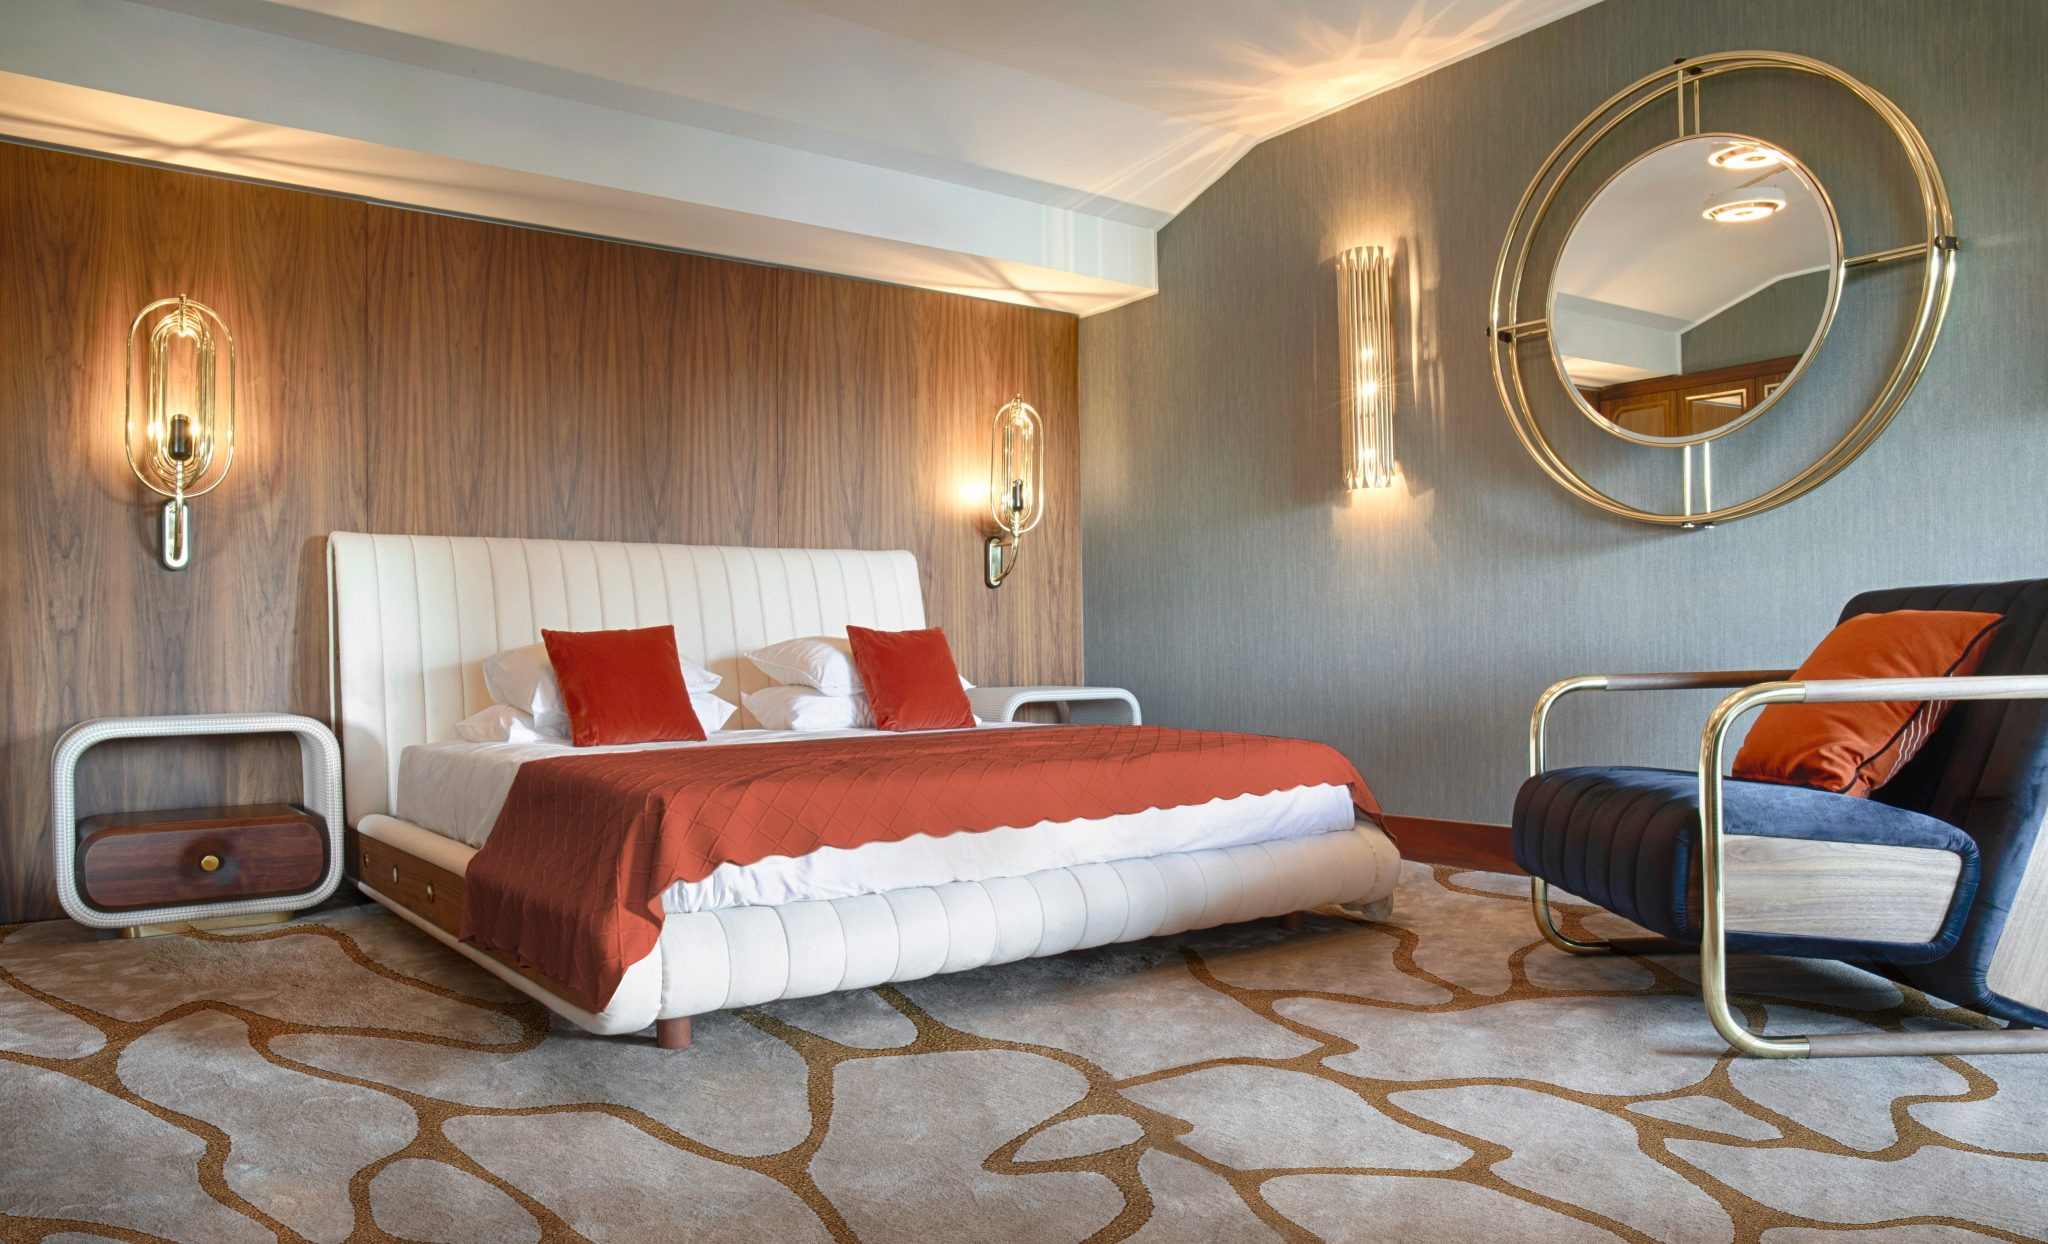 Mid-century bedroom are an inspiring luxury experience